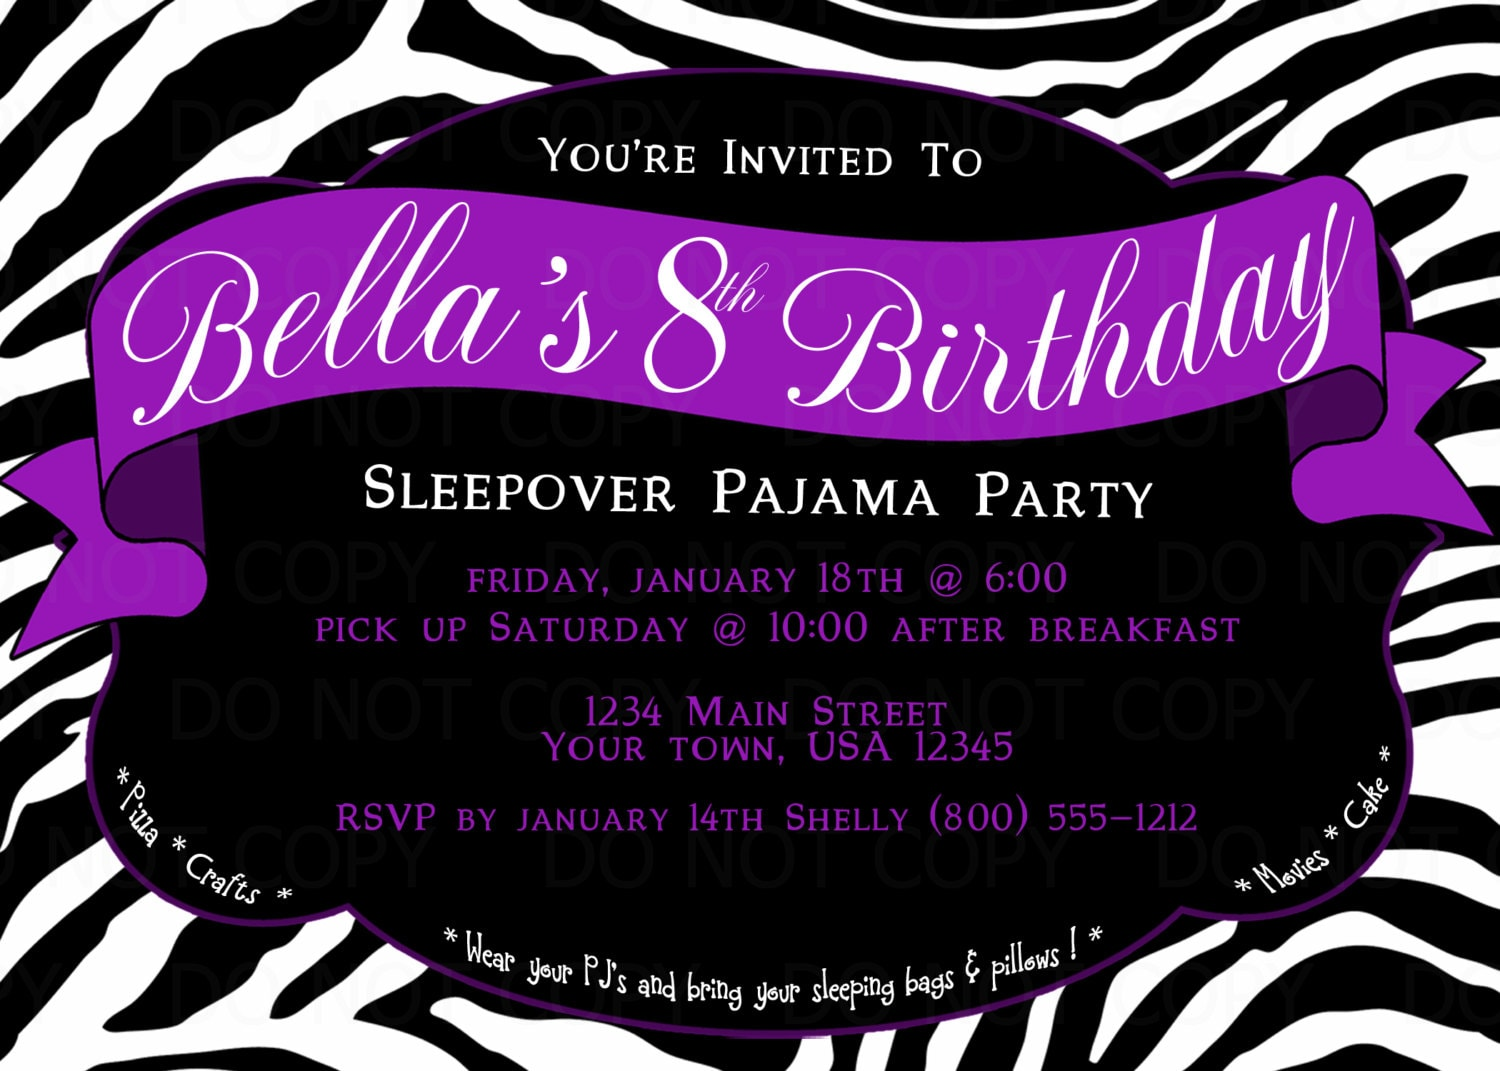 sleepover birthday party invitations free printable - Paso.evolist.co